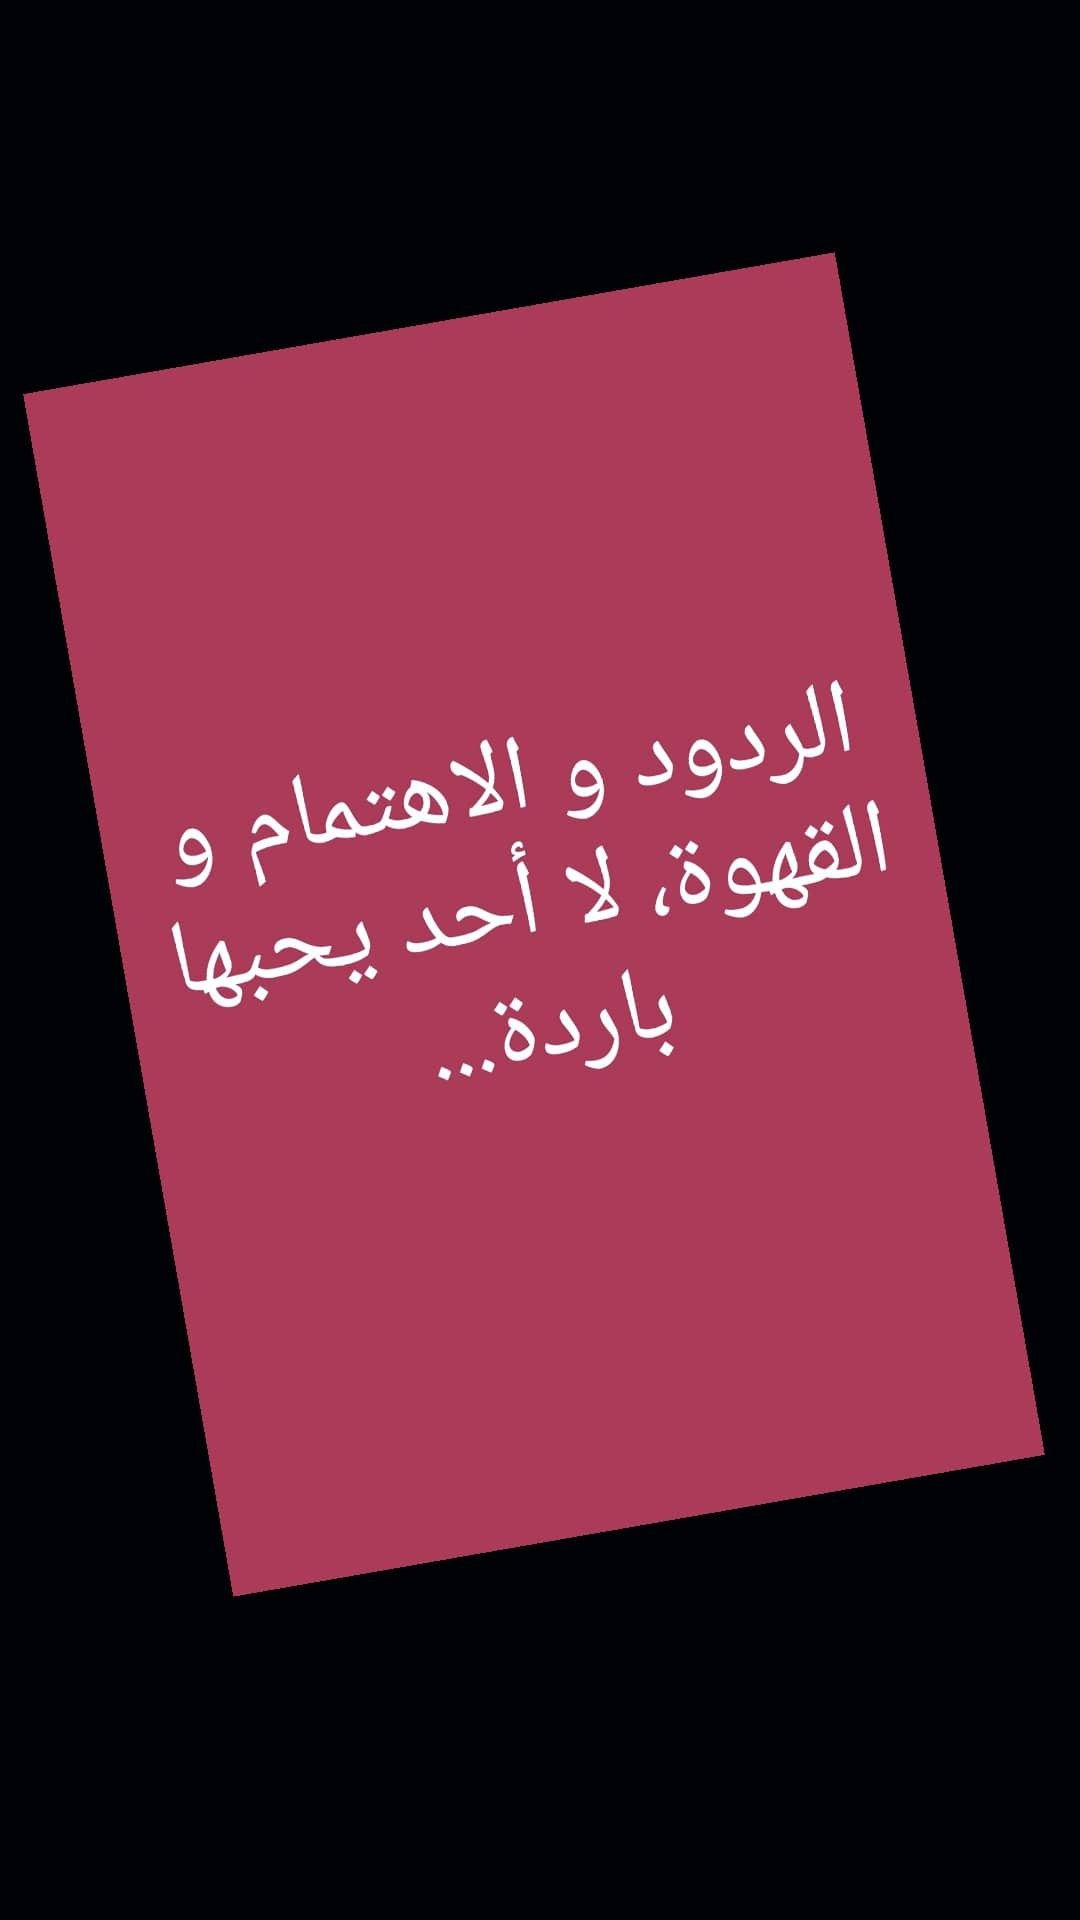 Pin By Zo Za On Story Thoughts Quotes Arabic Words Words